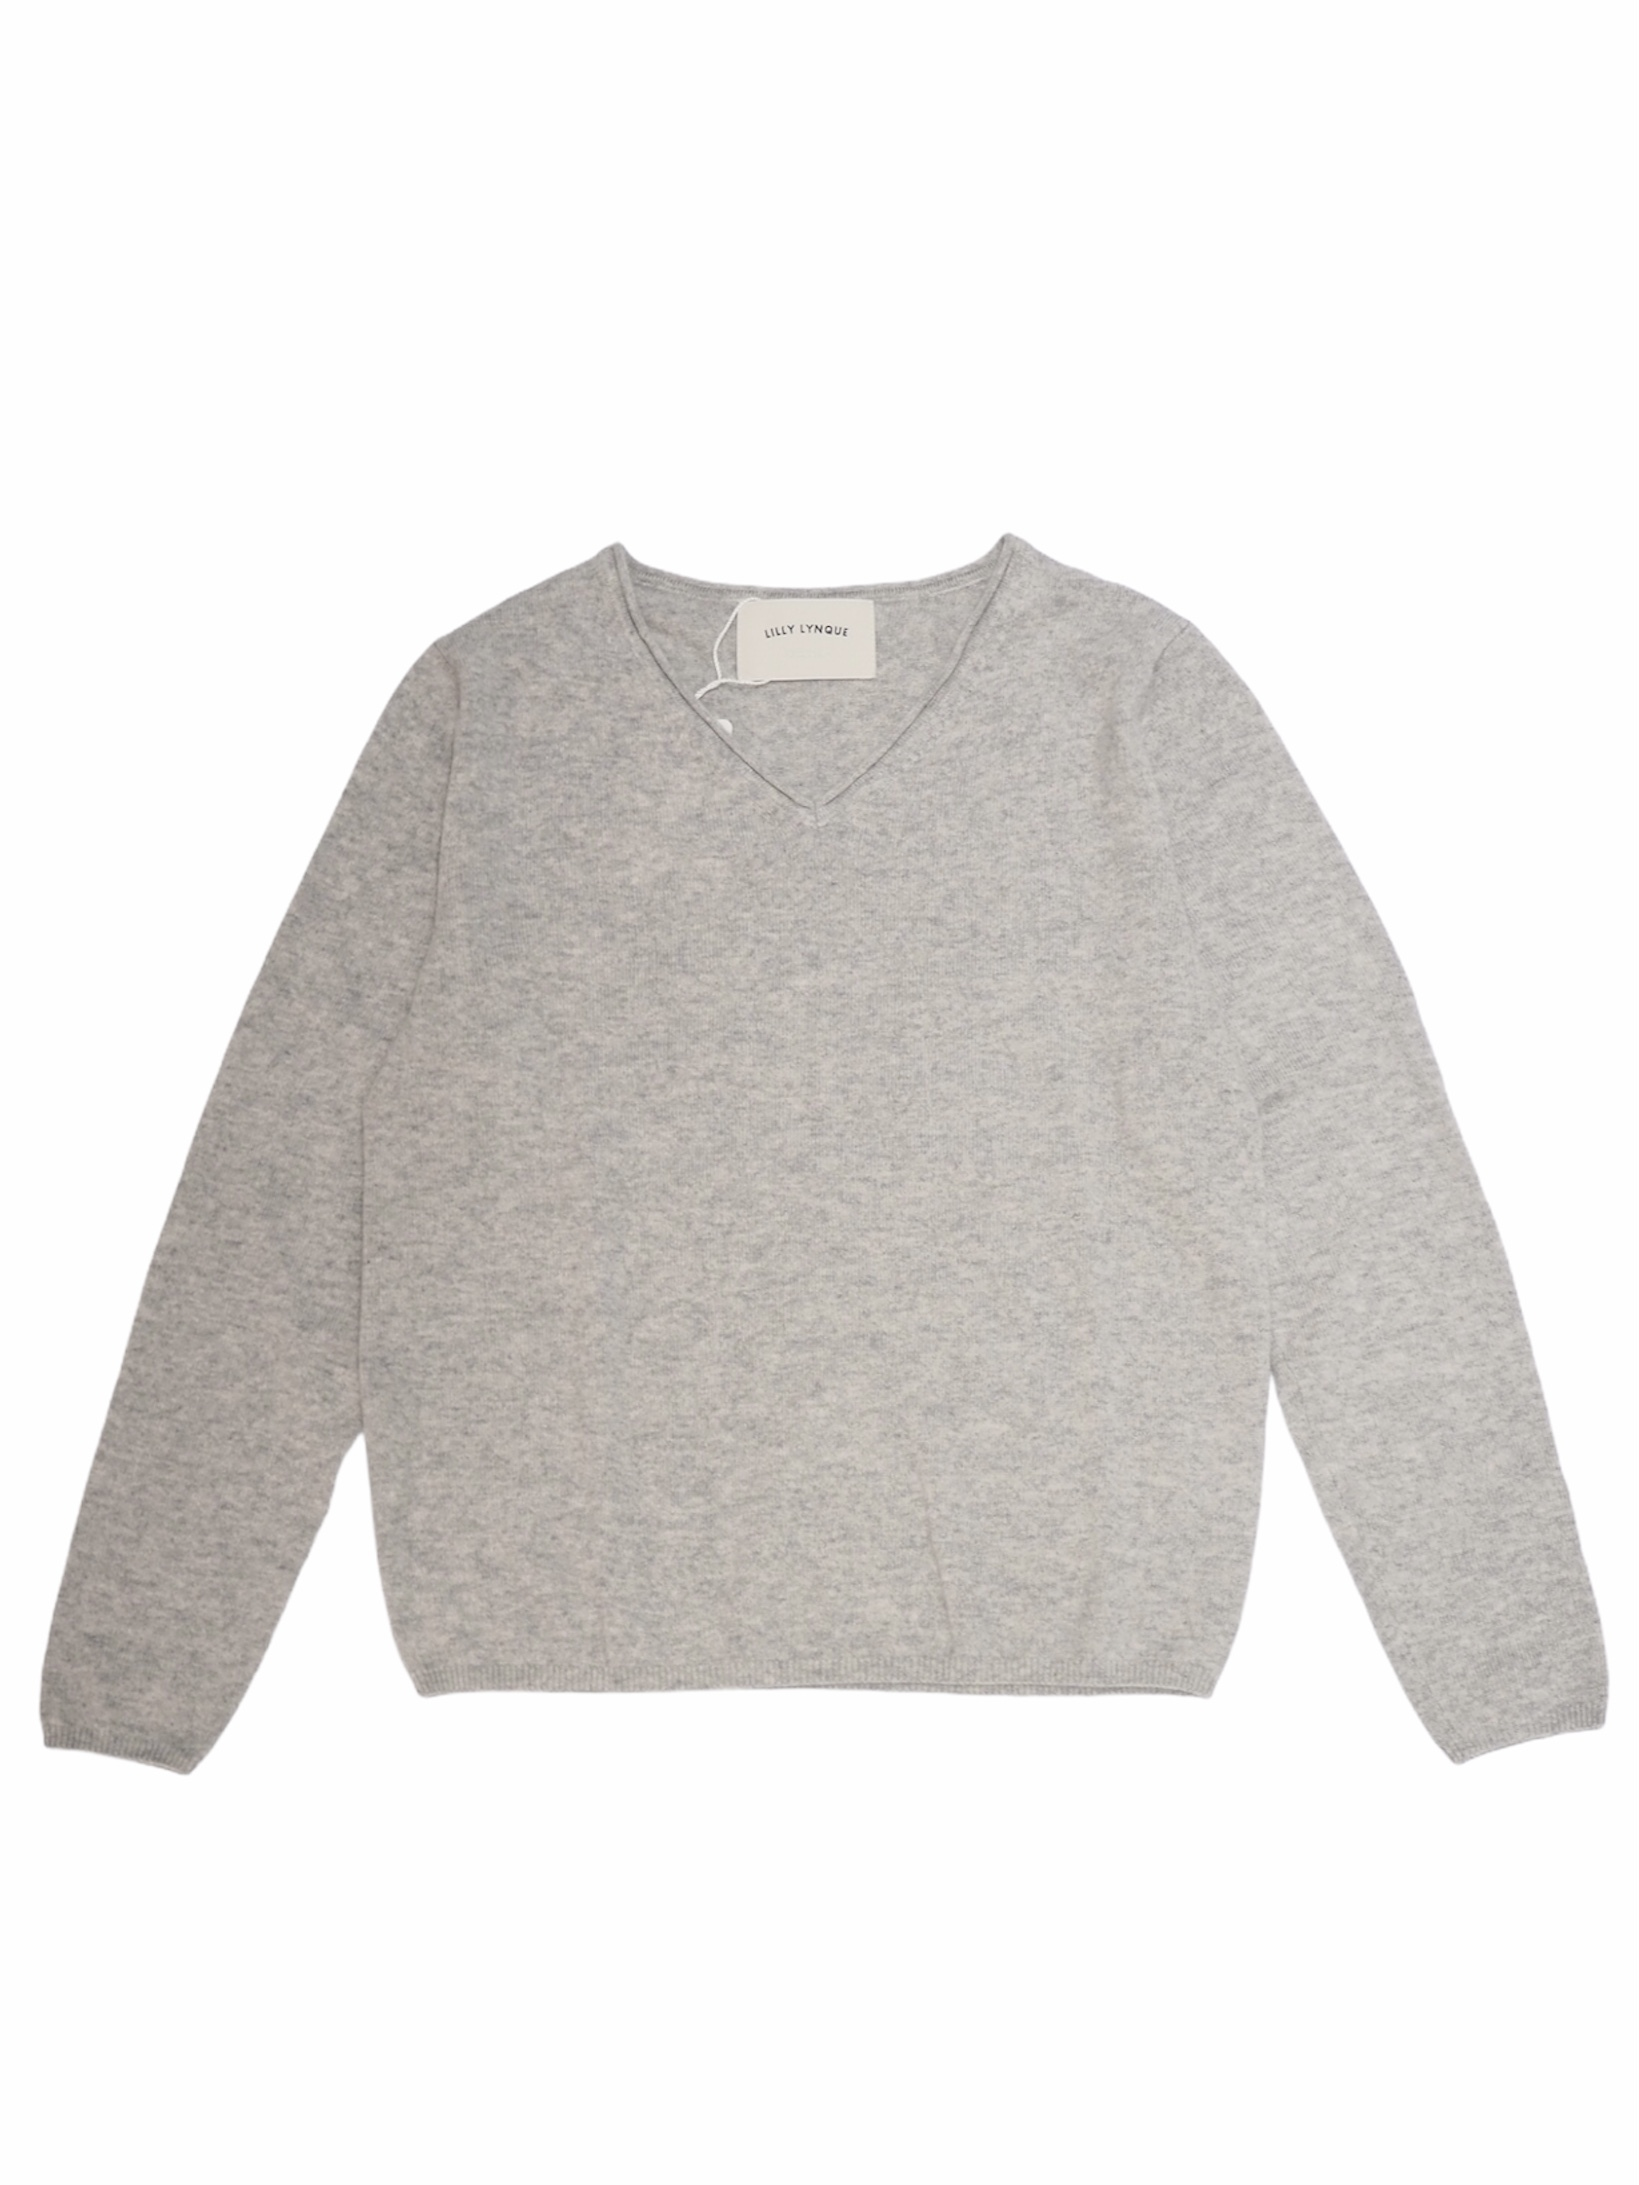 【LILLY LYNQUE】CASHMERE KNIT